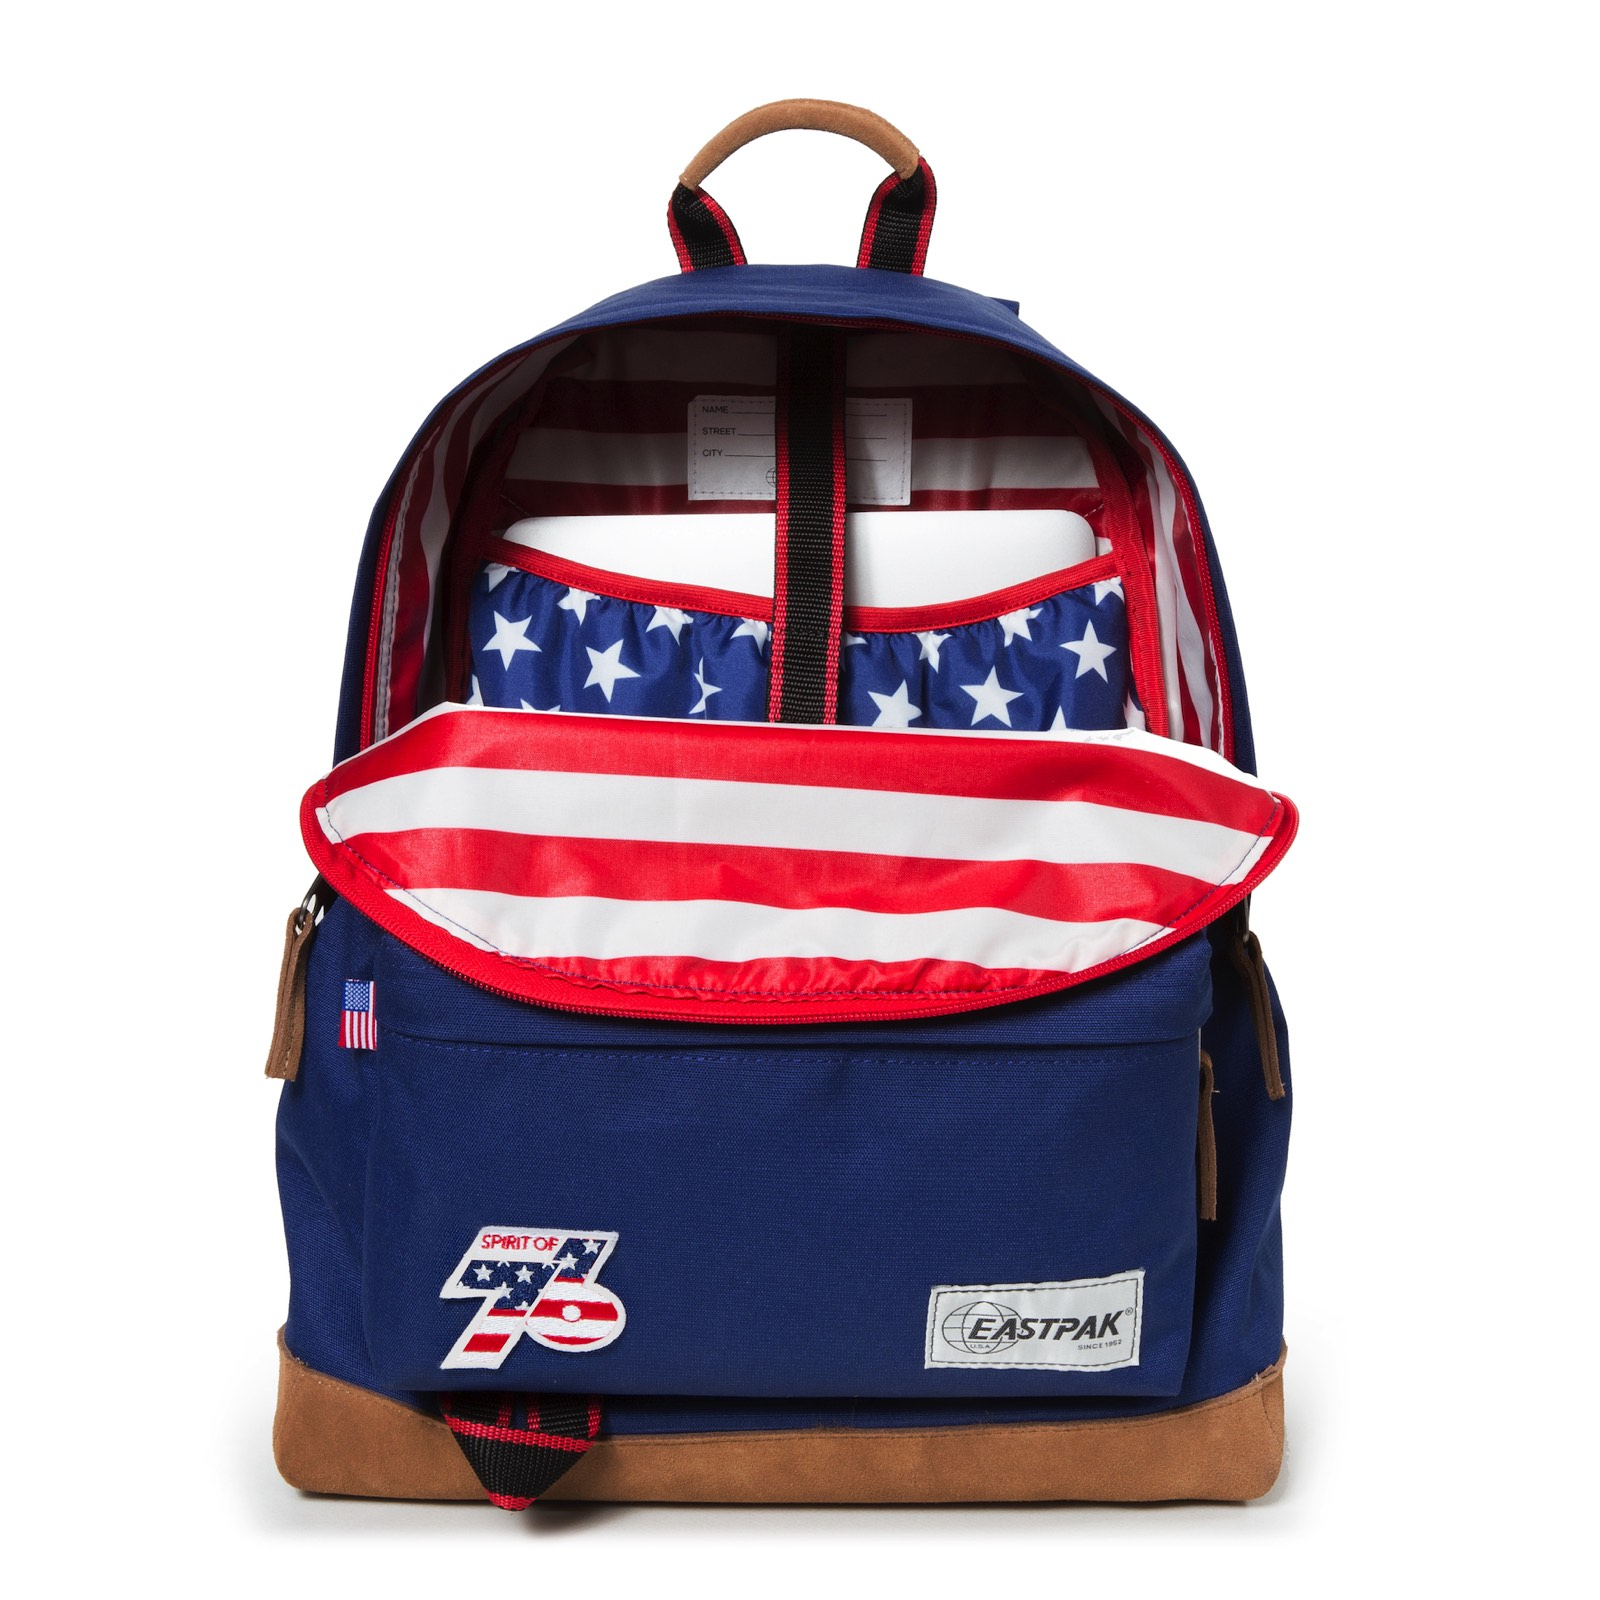 eastpak_spirit-of-76_12